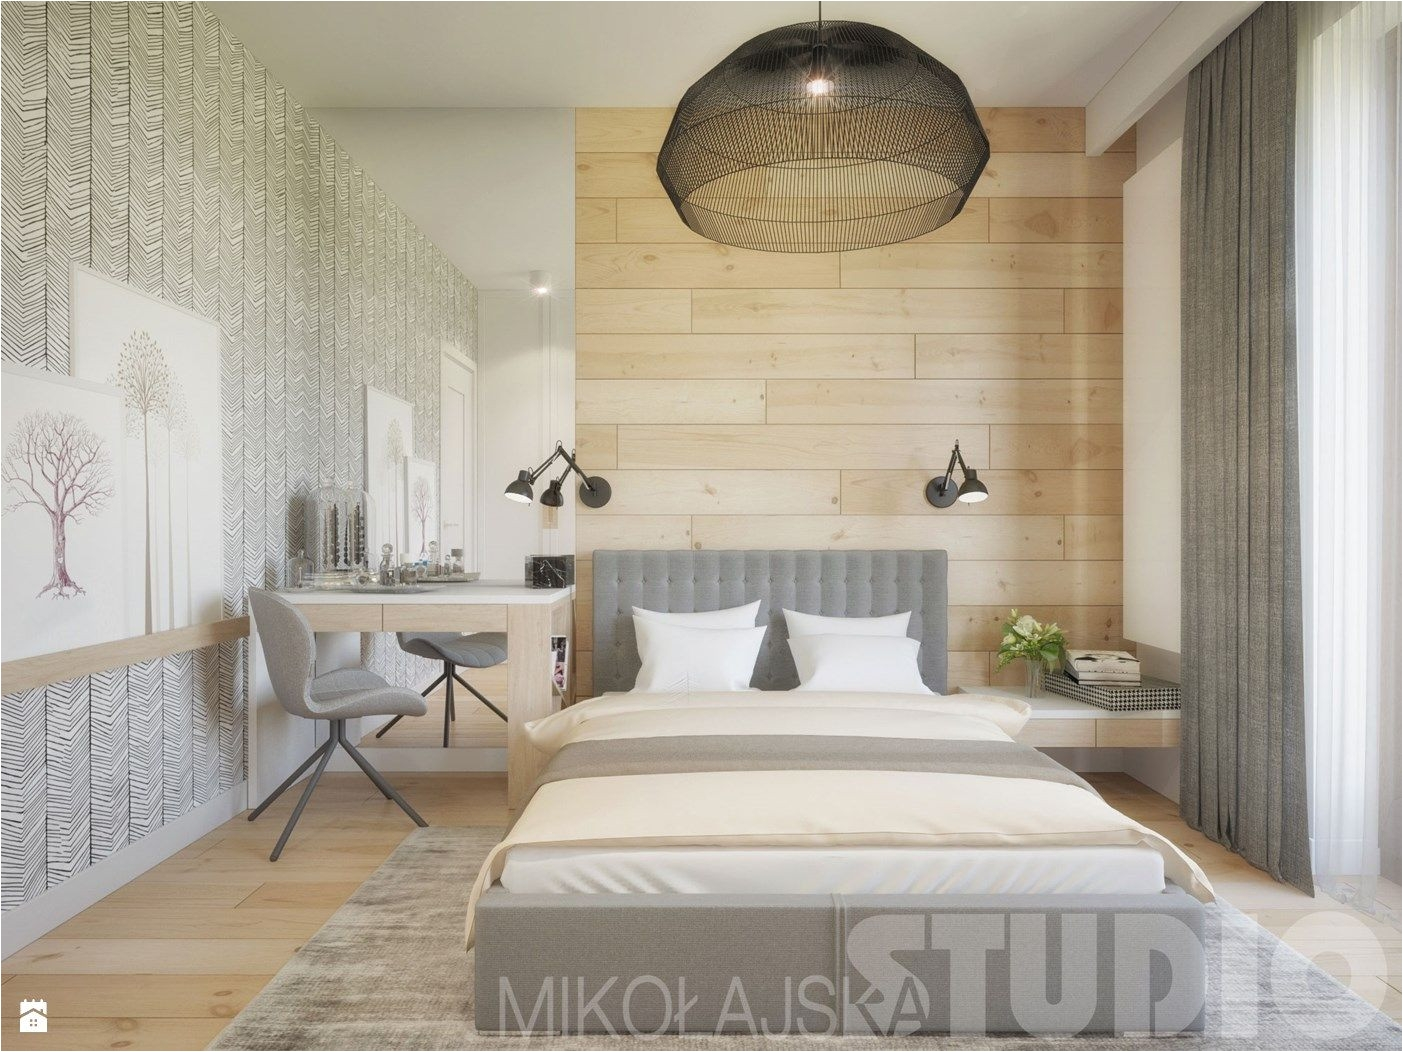 Bedroom Chairs that Hang From the Ceiling Chairs that Hang From the Ceiling for Bedrooms Luxury 40 Best Graph